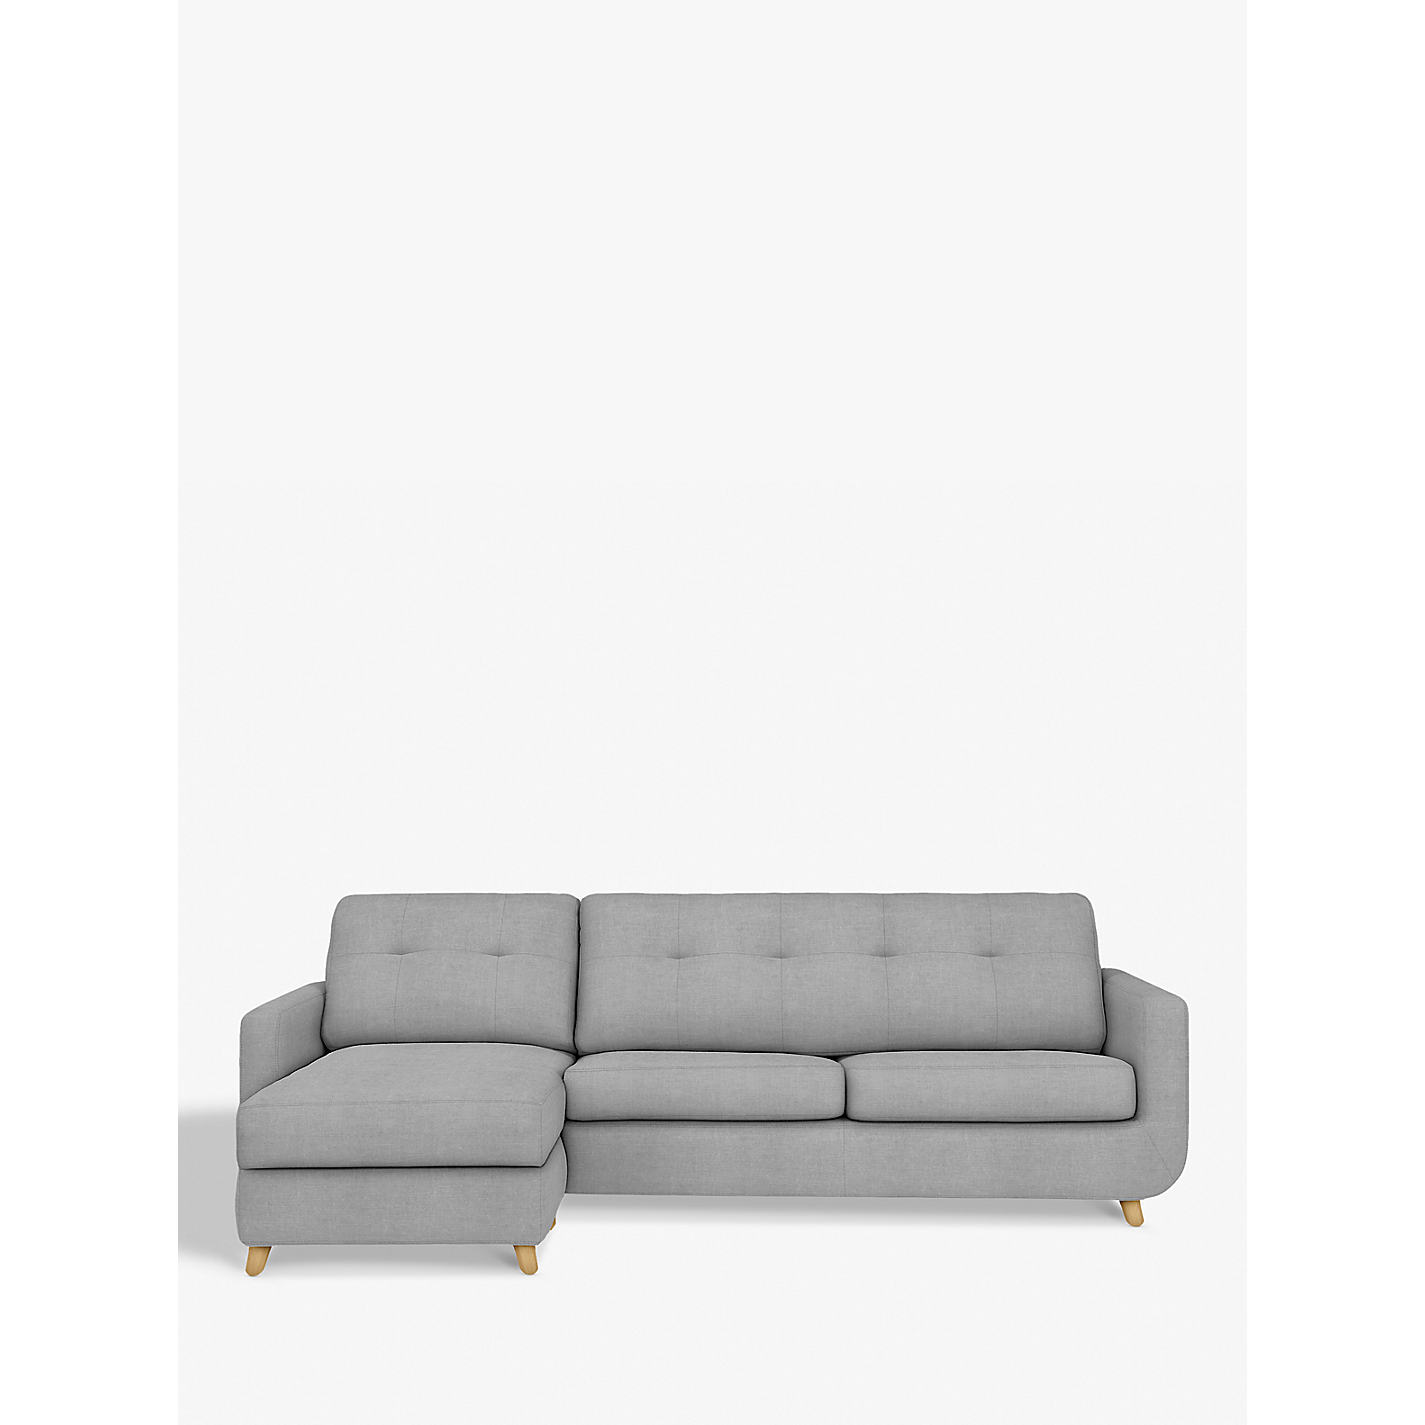 Chaise longue sofa bed john lewis for Chaise longue john lewis